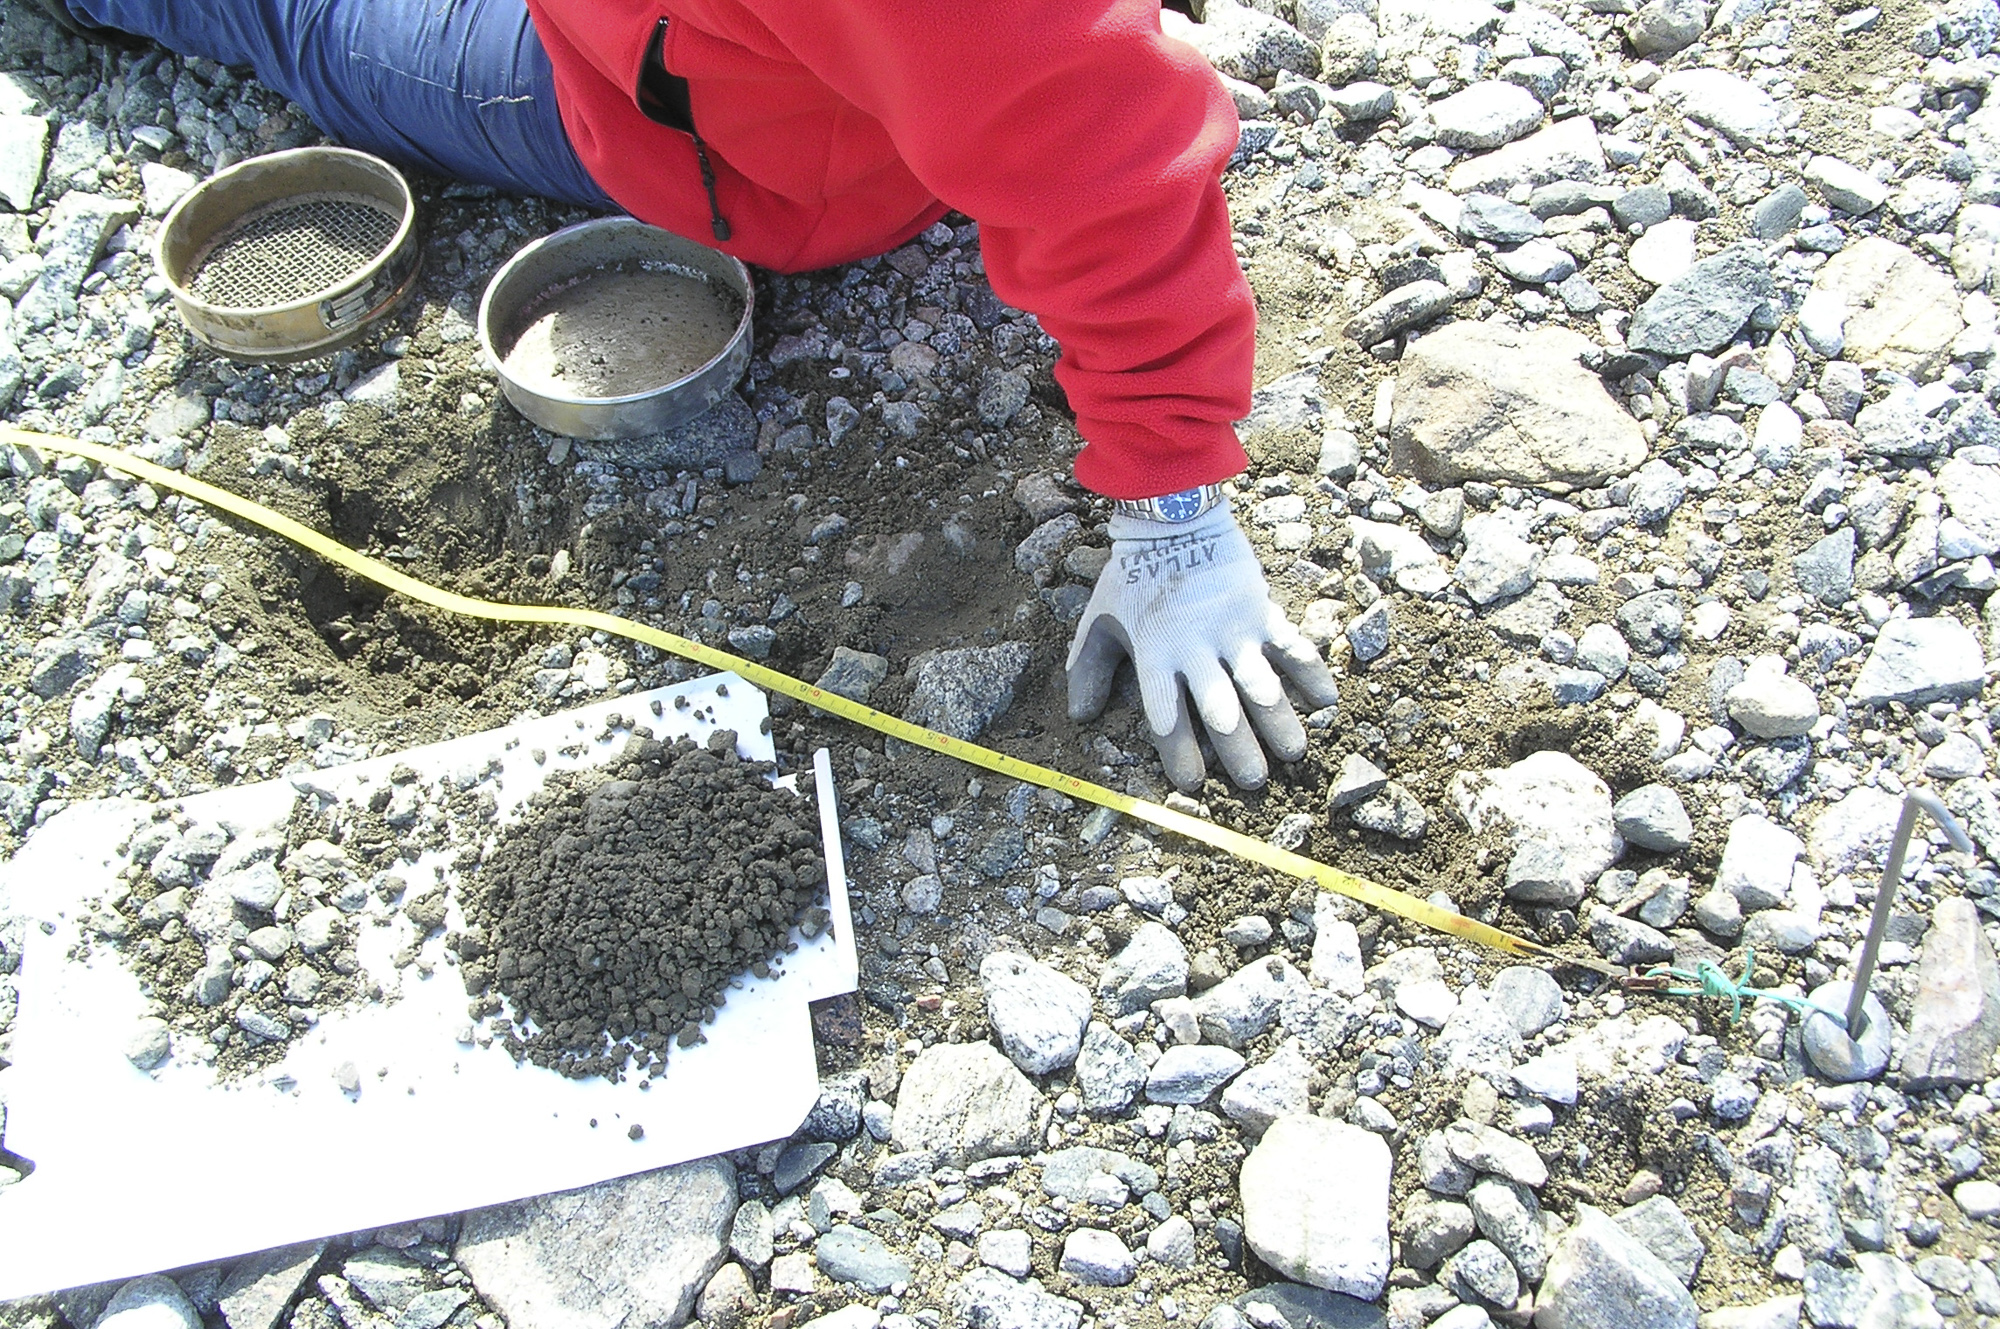 Antarctic soil biodiversity sampling.